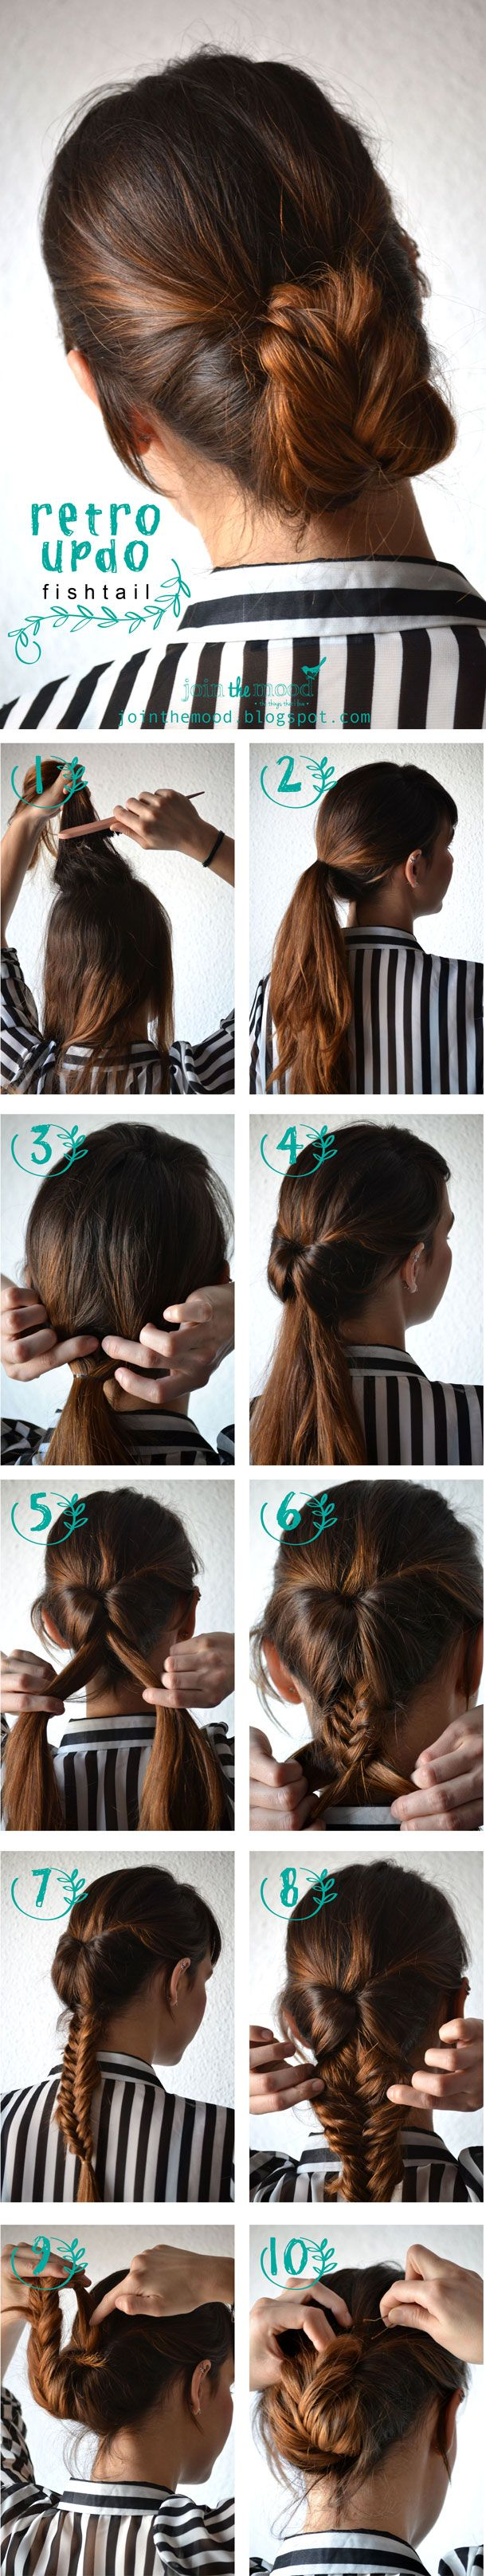 Join the Mood: RETRO UPDO FISHTAIL